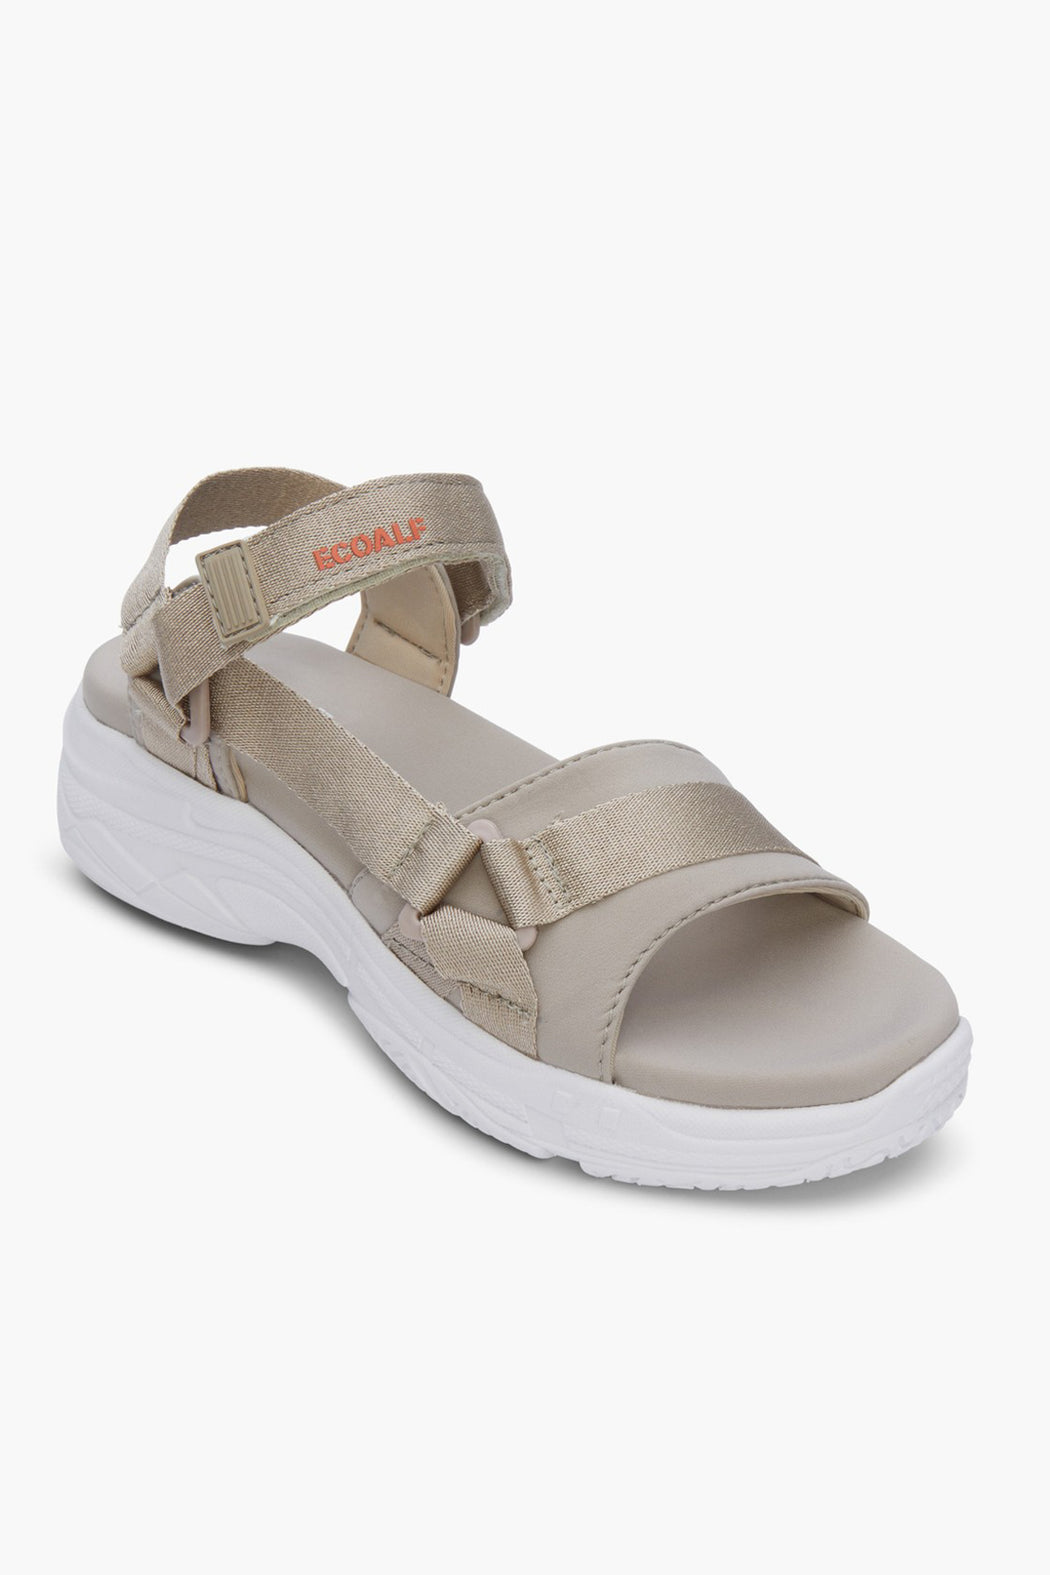 SOFIA Sandals darksand